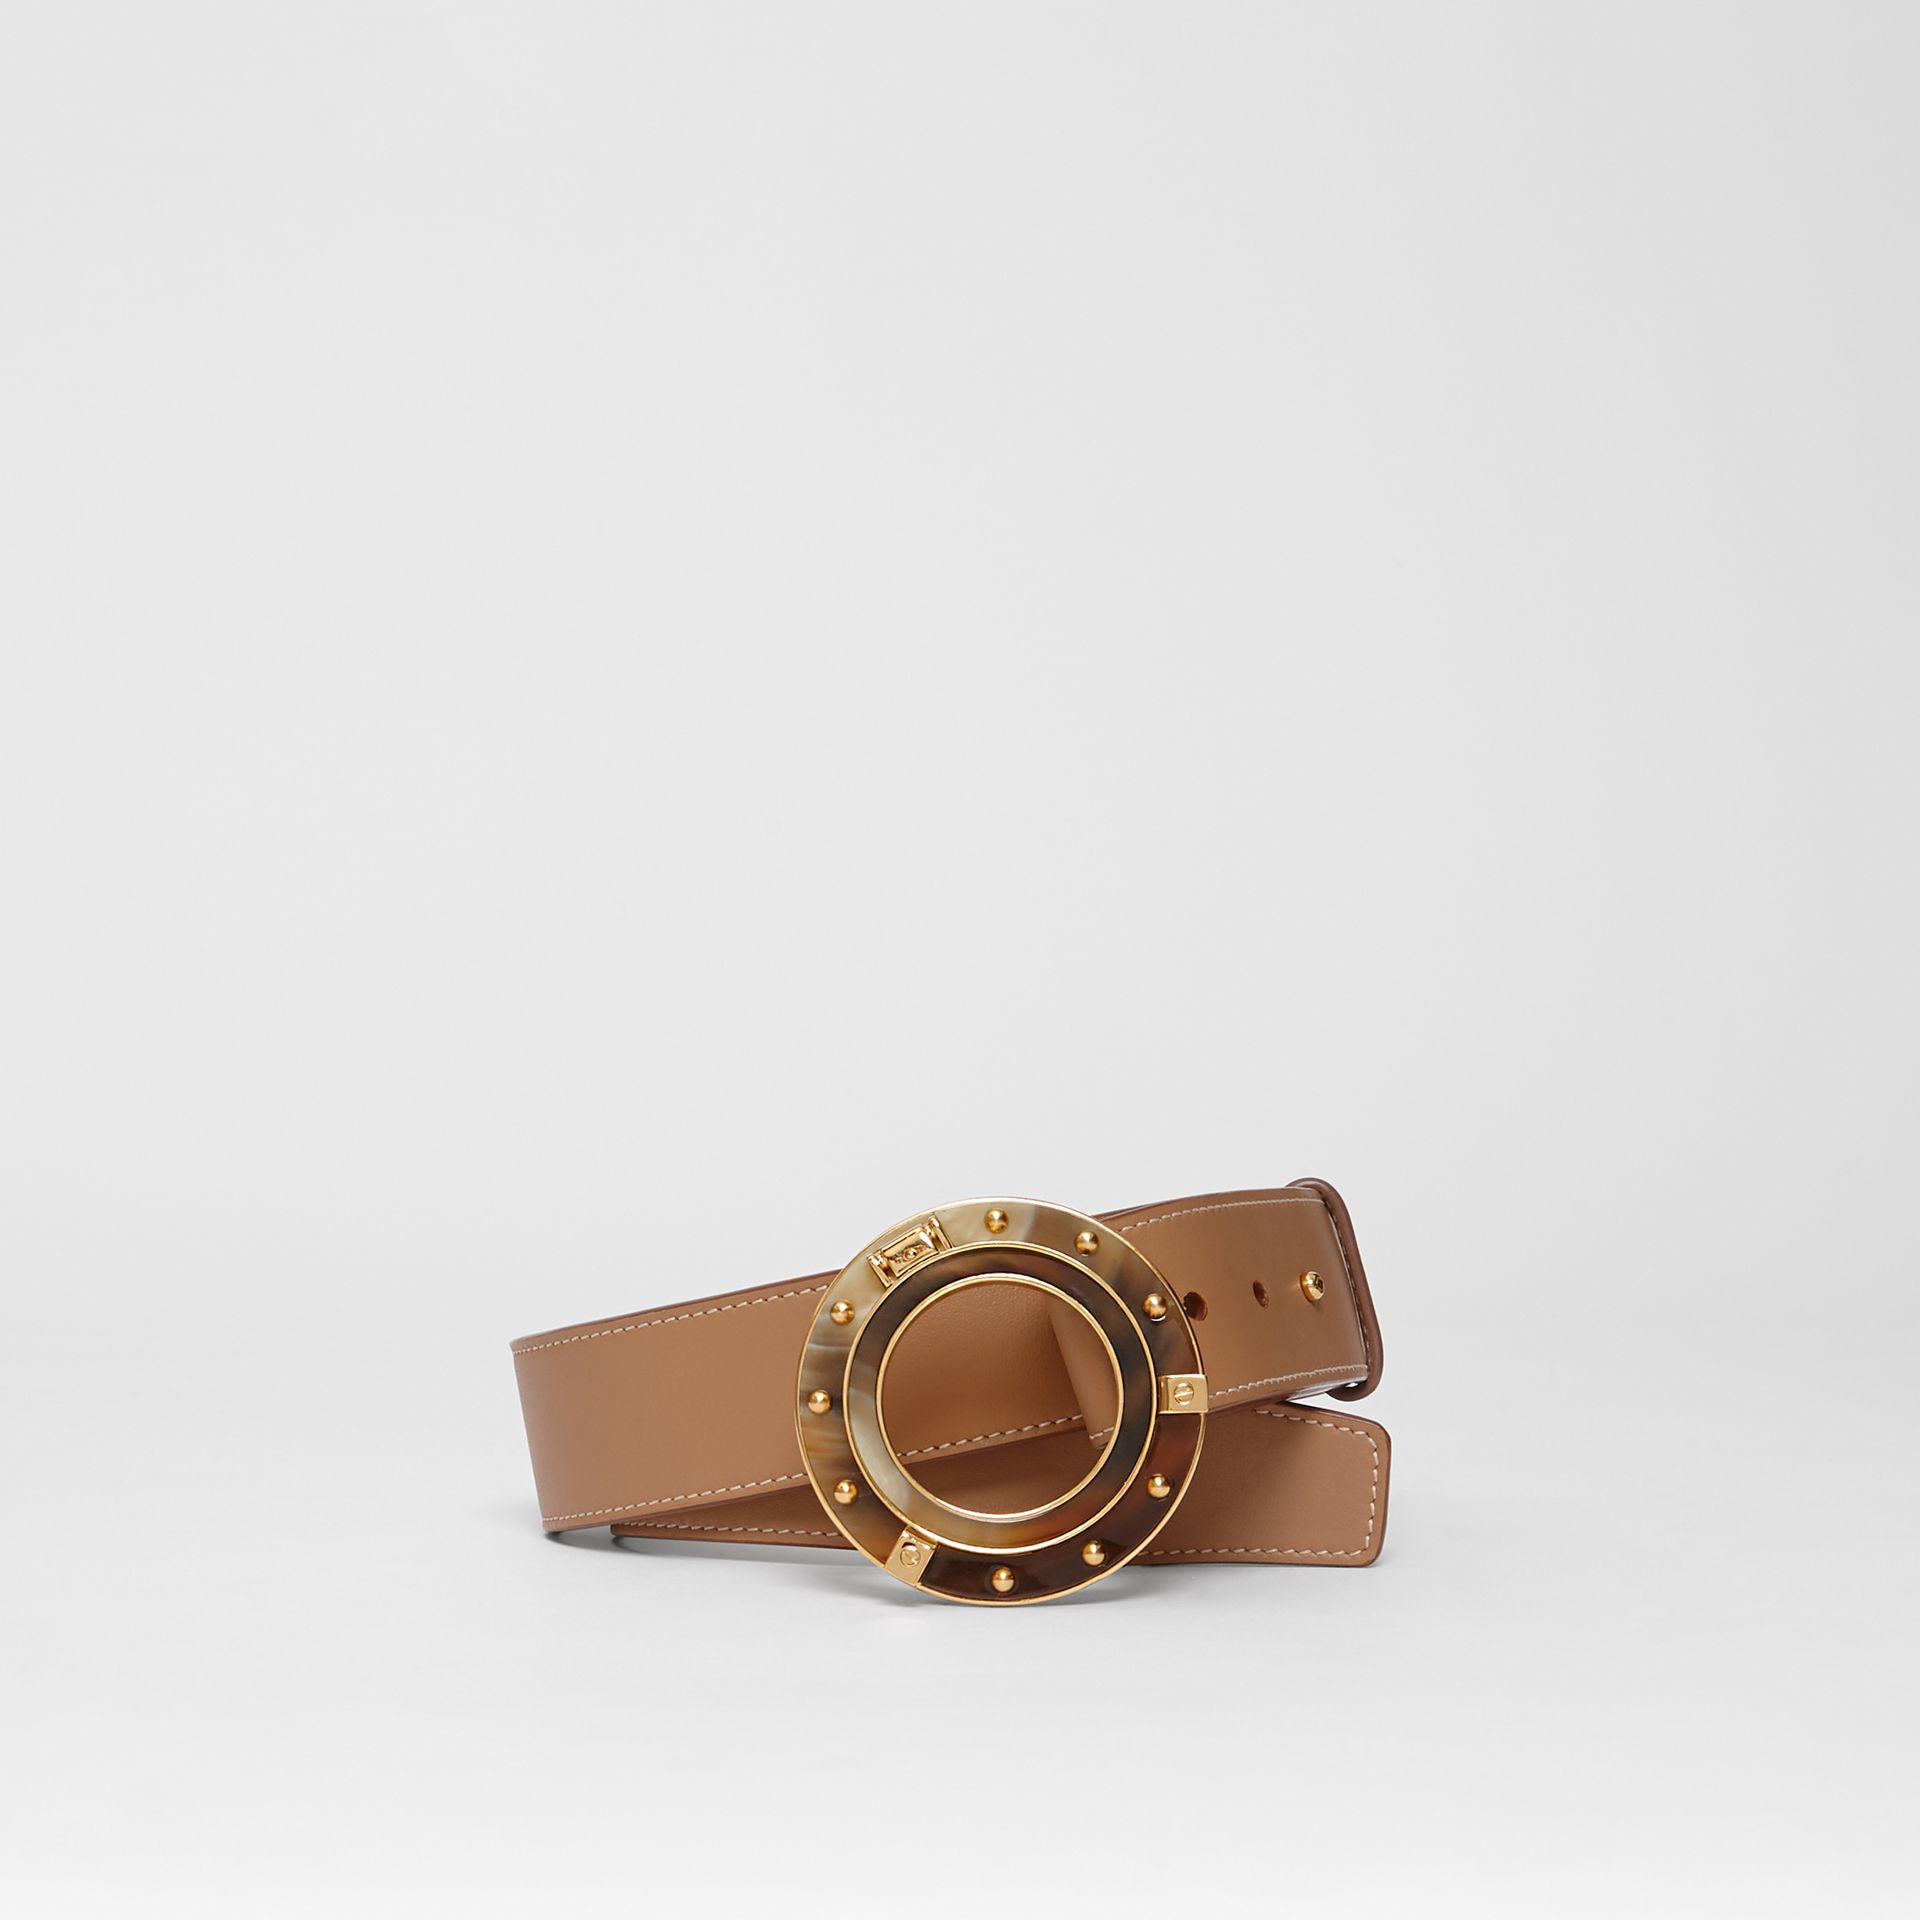 Porthole Buckle Leather Belt in Light Camel - Women | Burberry Hong Kong S.A.R - gallery image 0